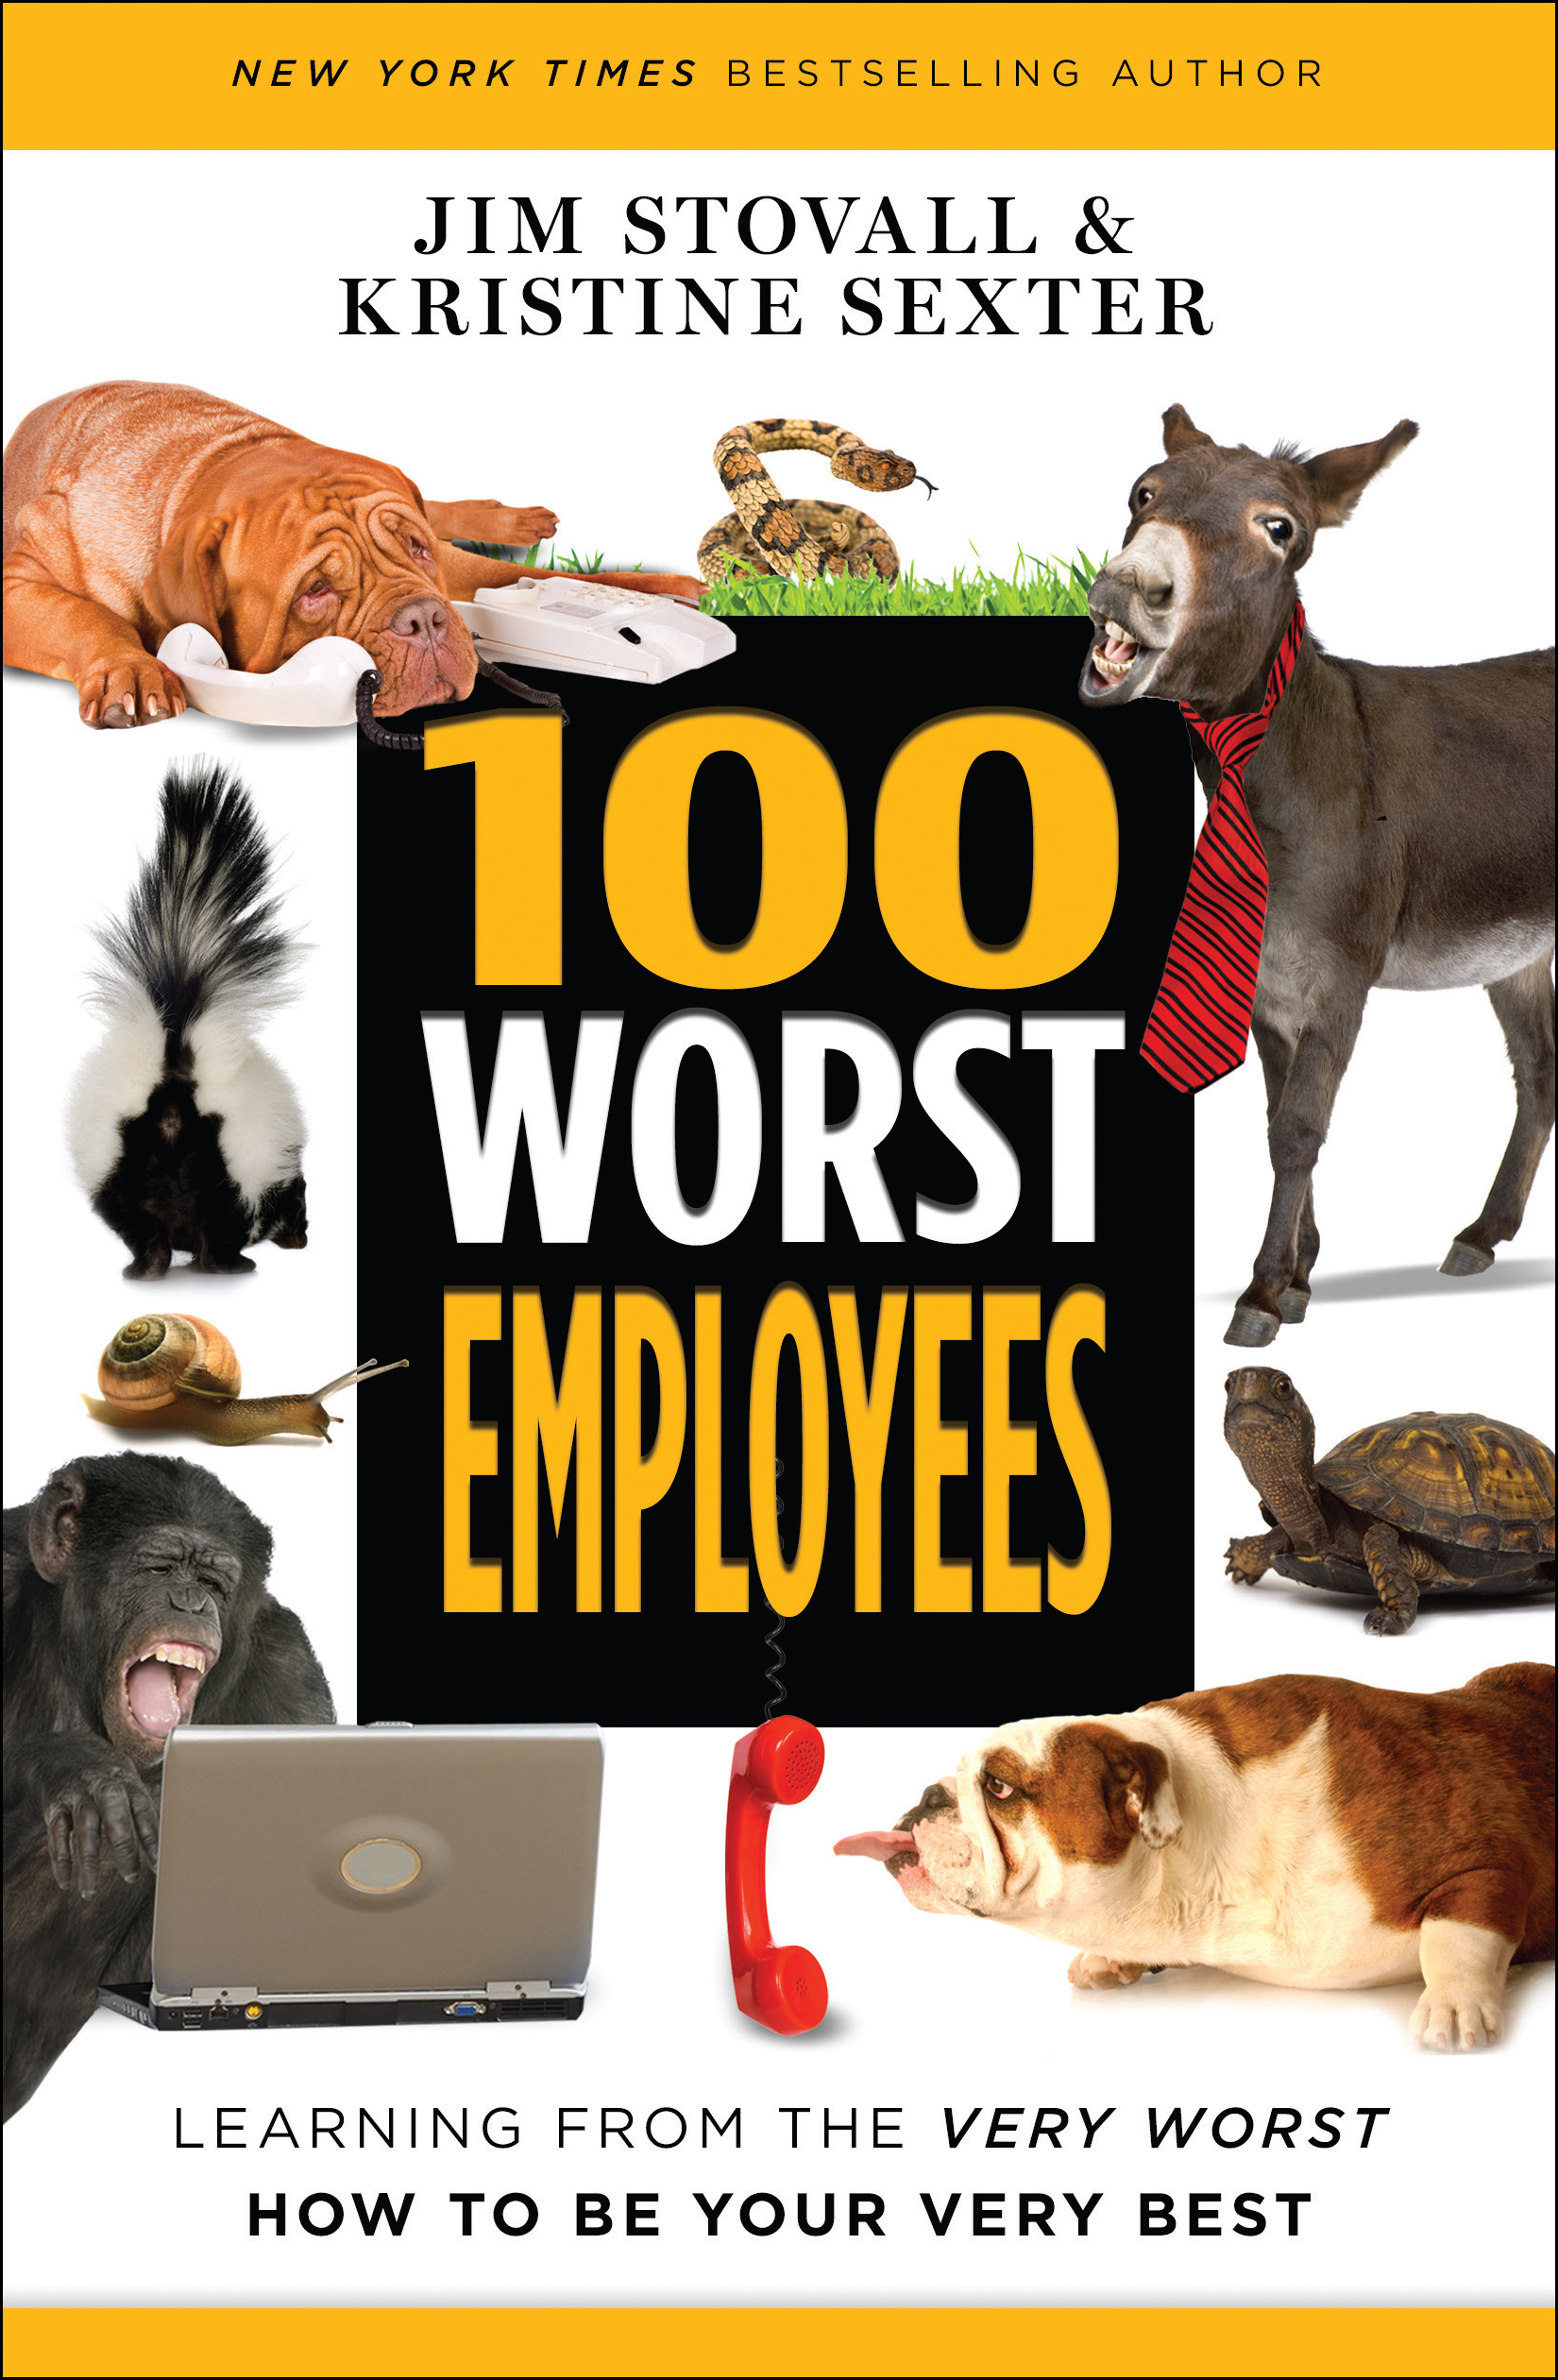 100 Worst Employees - By Jim Stovall and Kristine Sexter